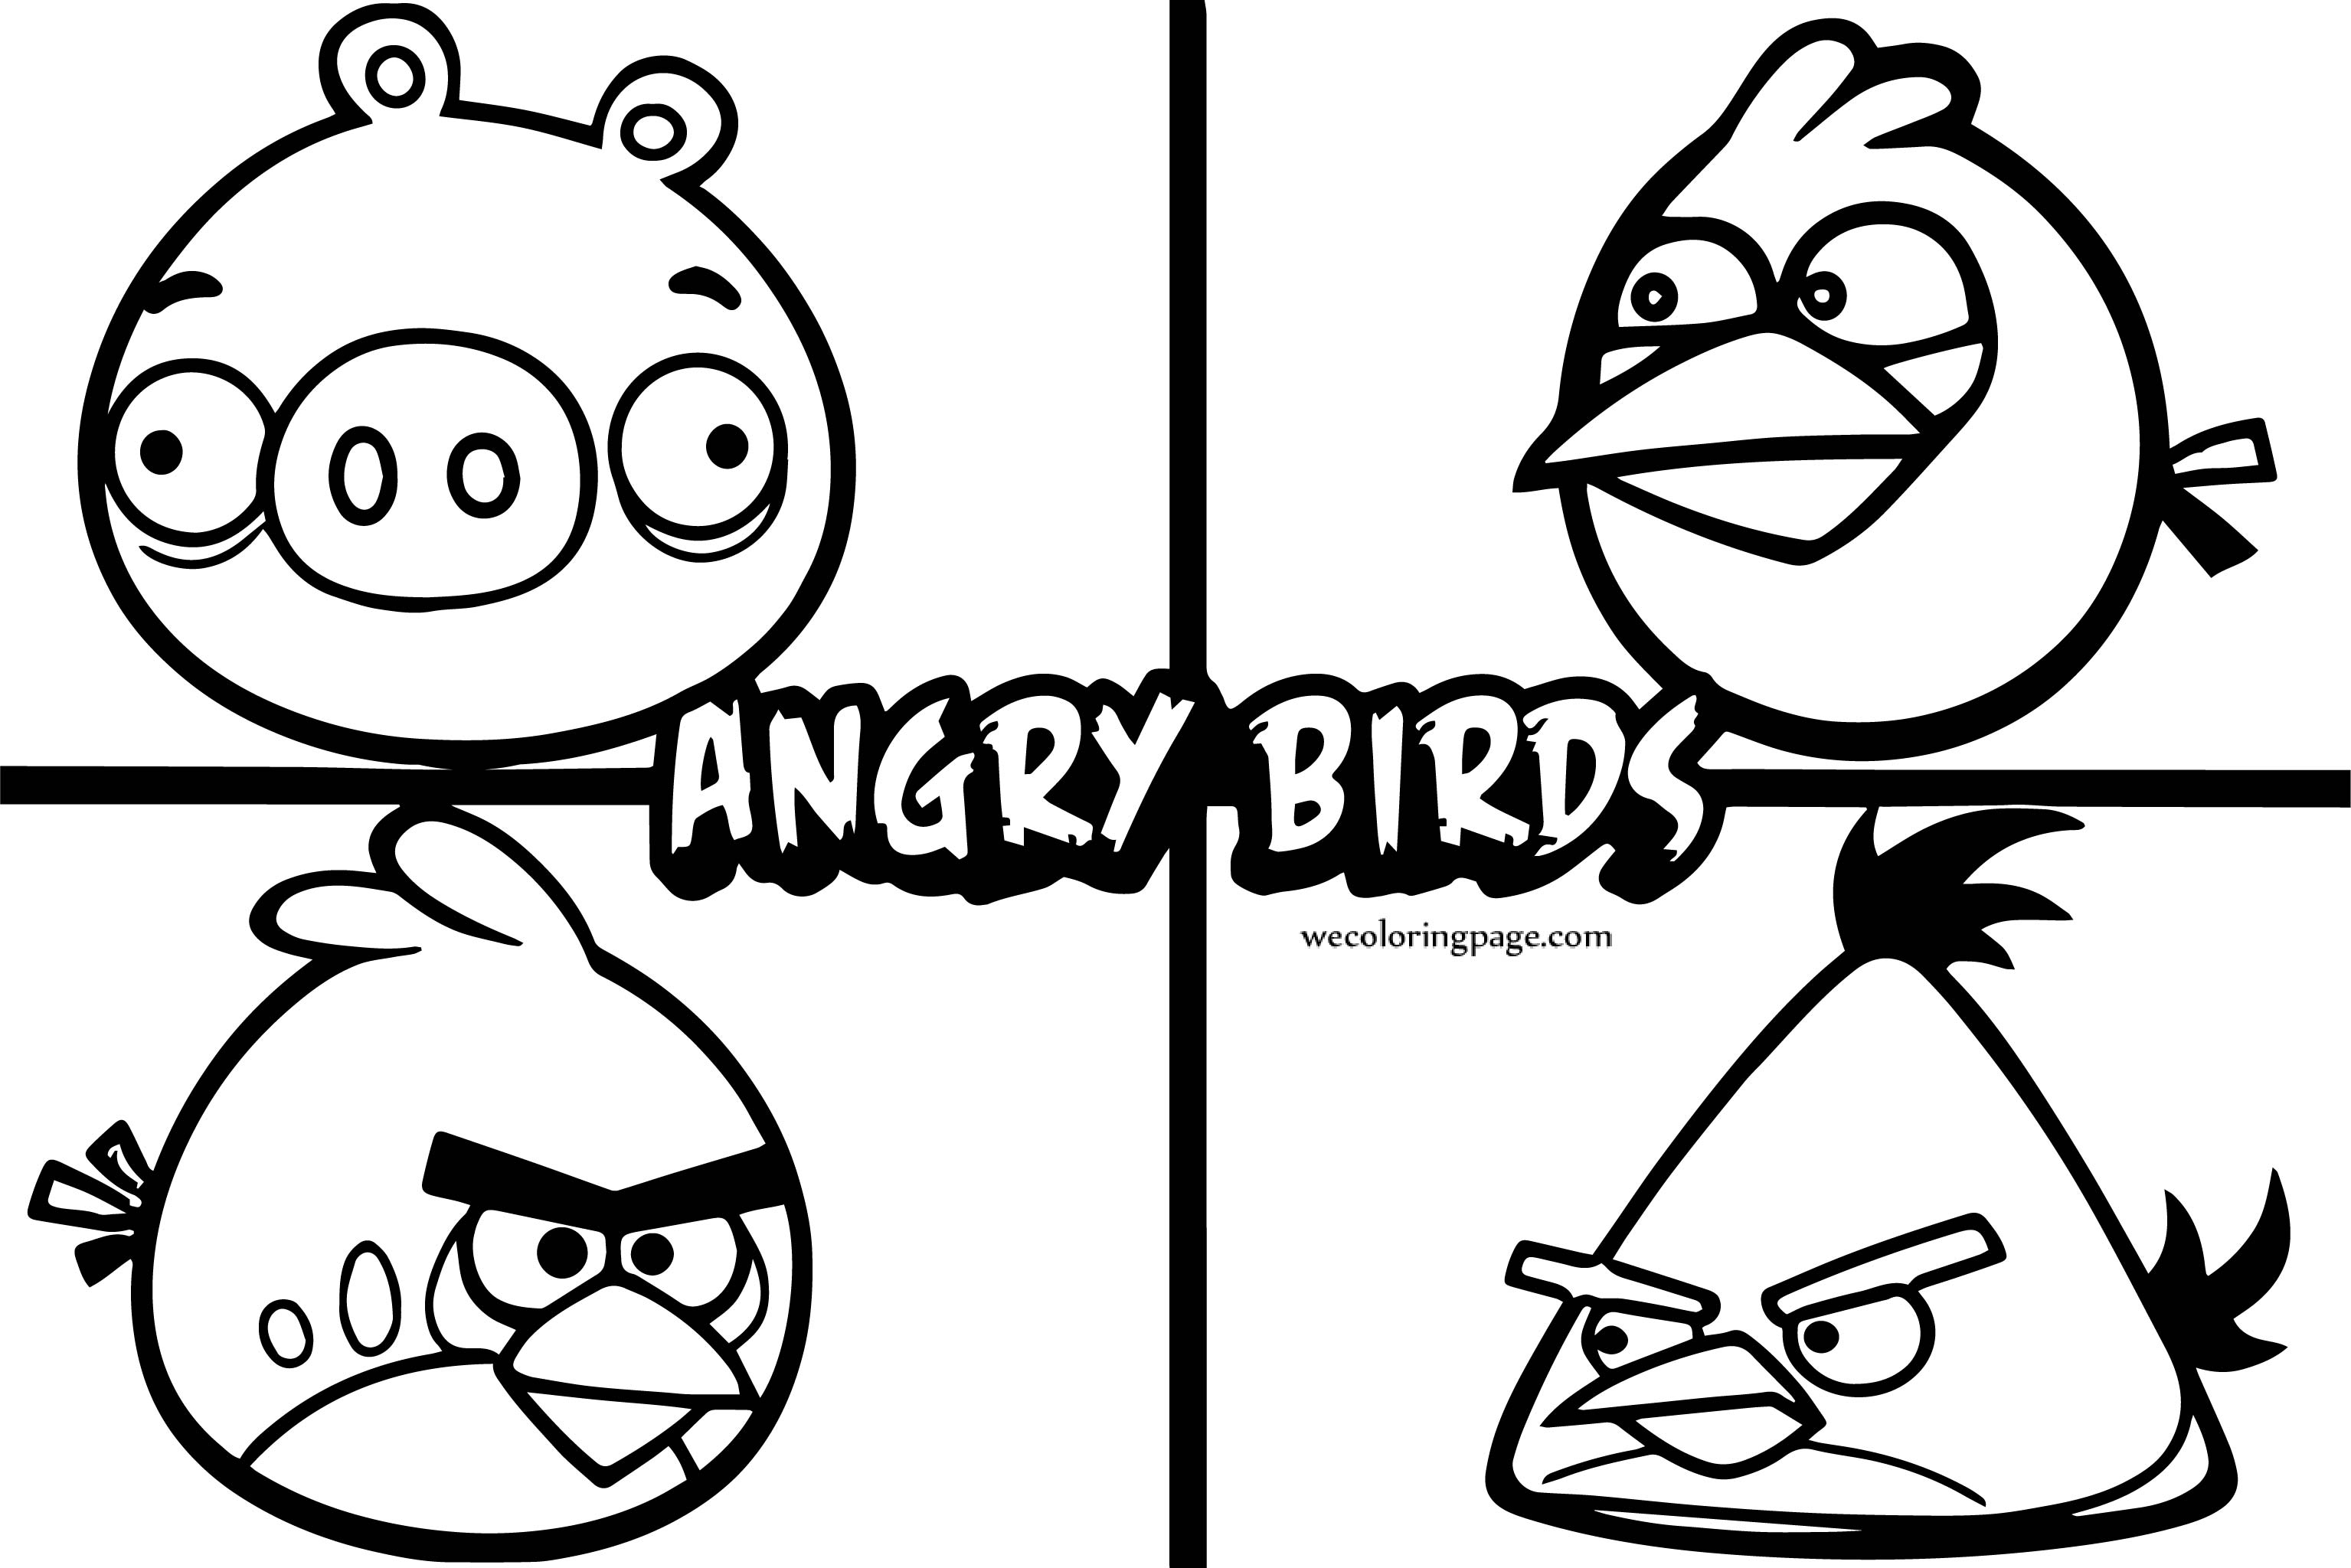 Four Angry Birds Character Coloring Page